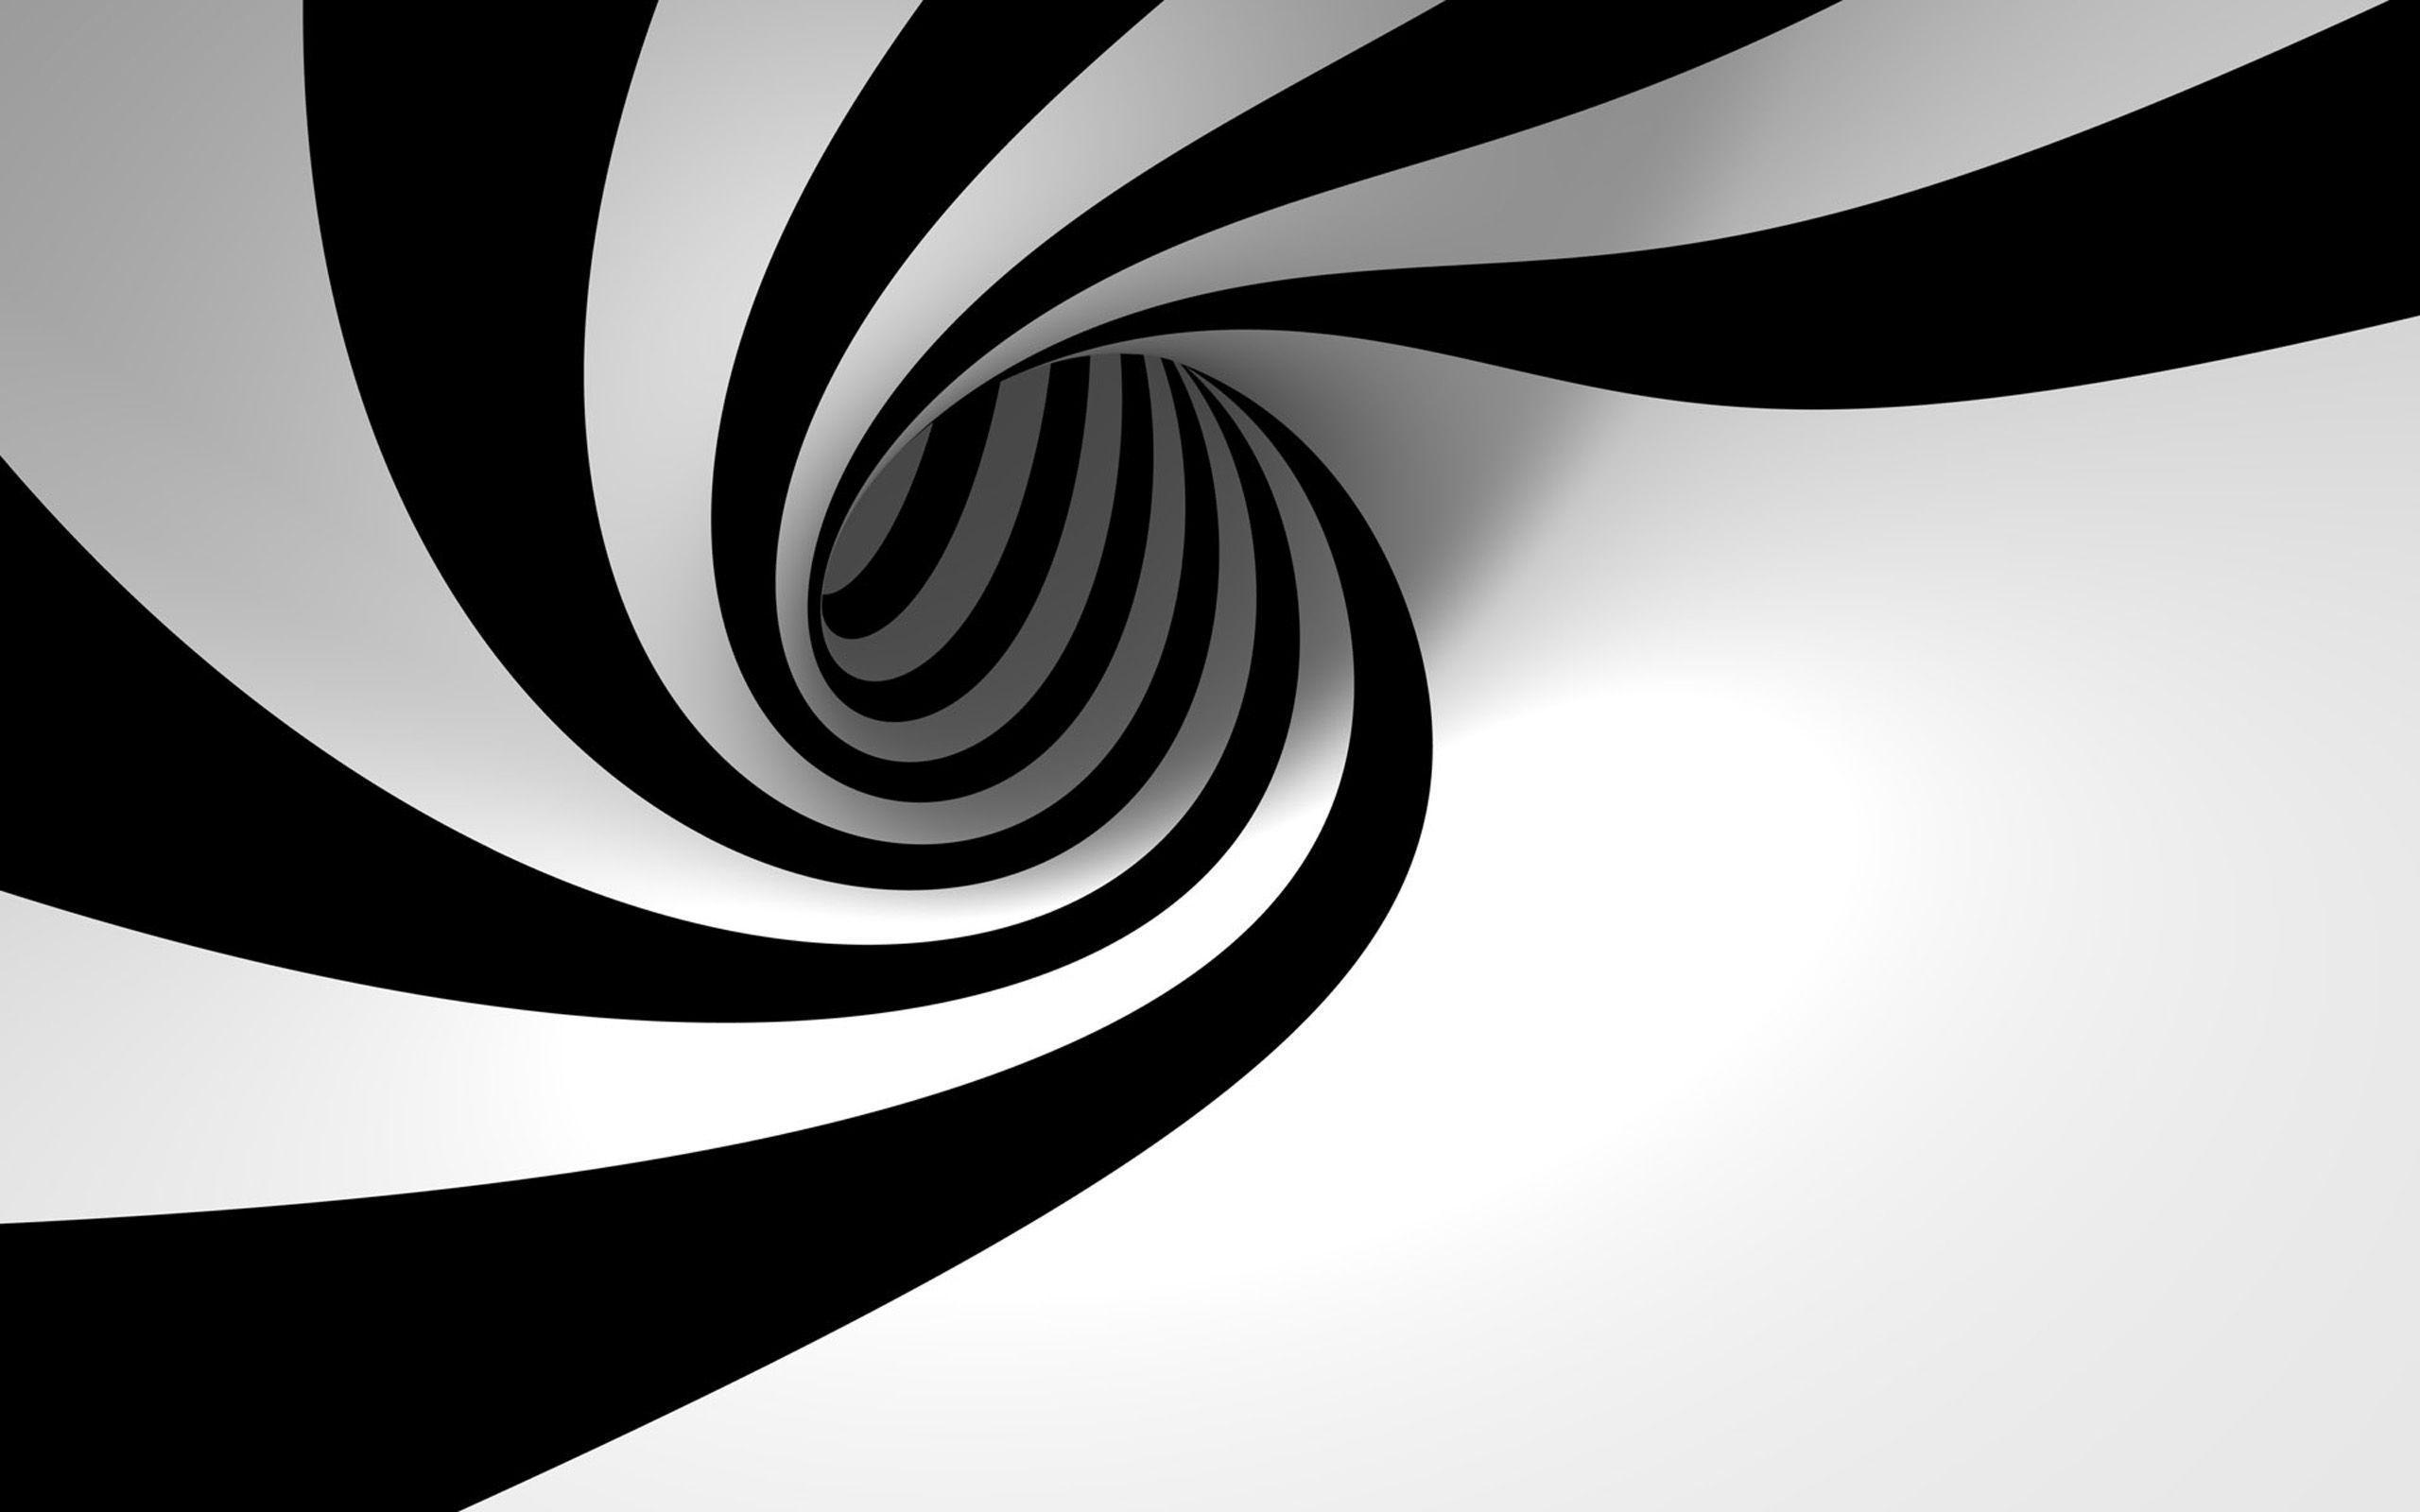 HD Wallpapers Black And White - Wallpaper Cave